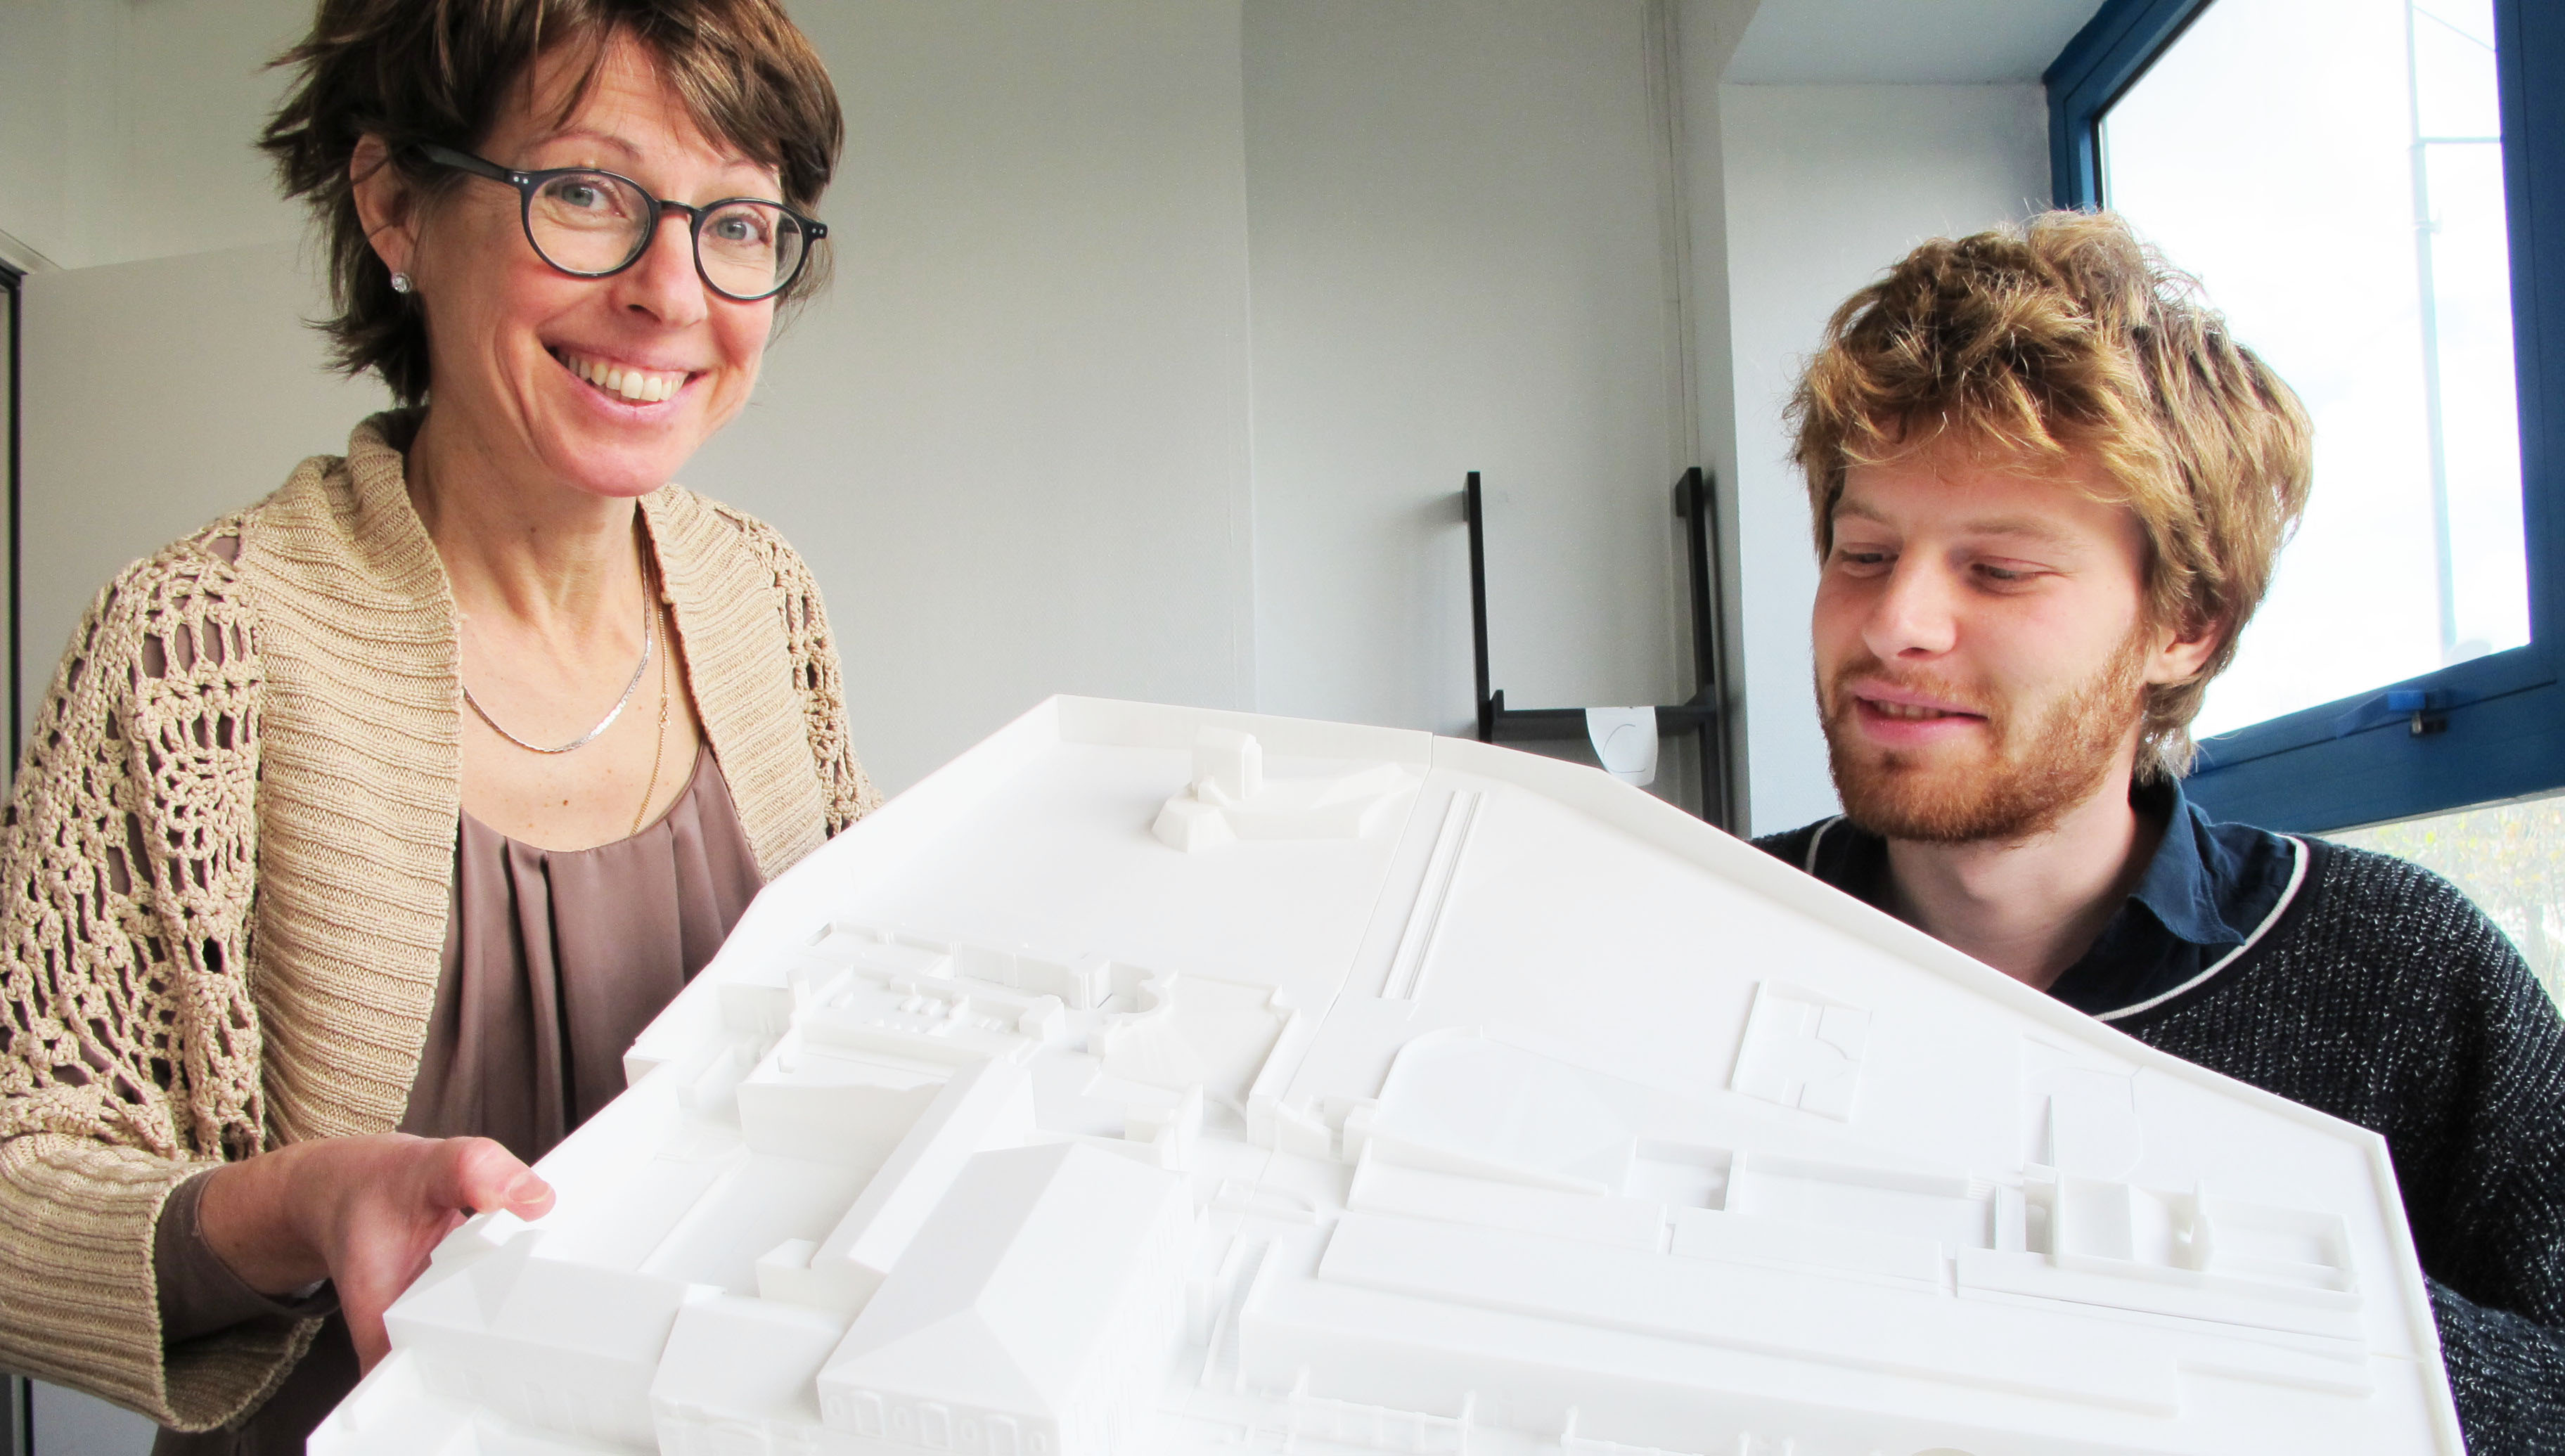 3D Printed Culture: an abbaye model for the visually impaired